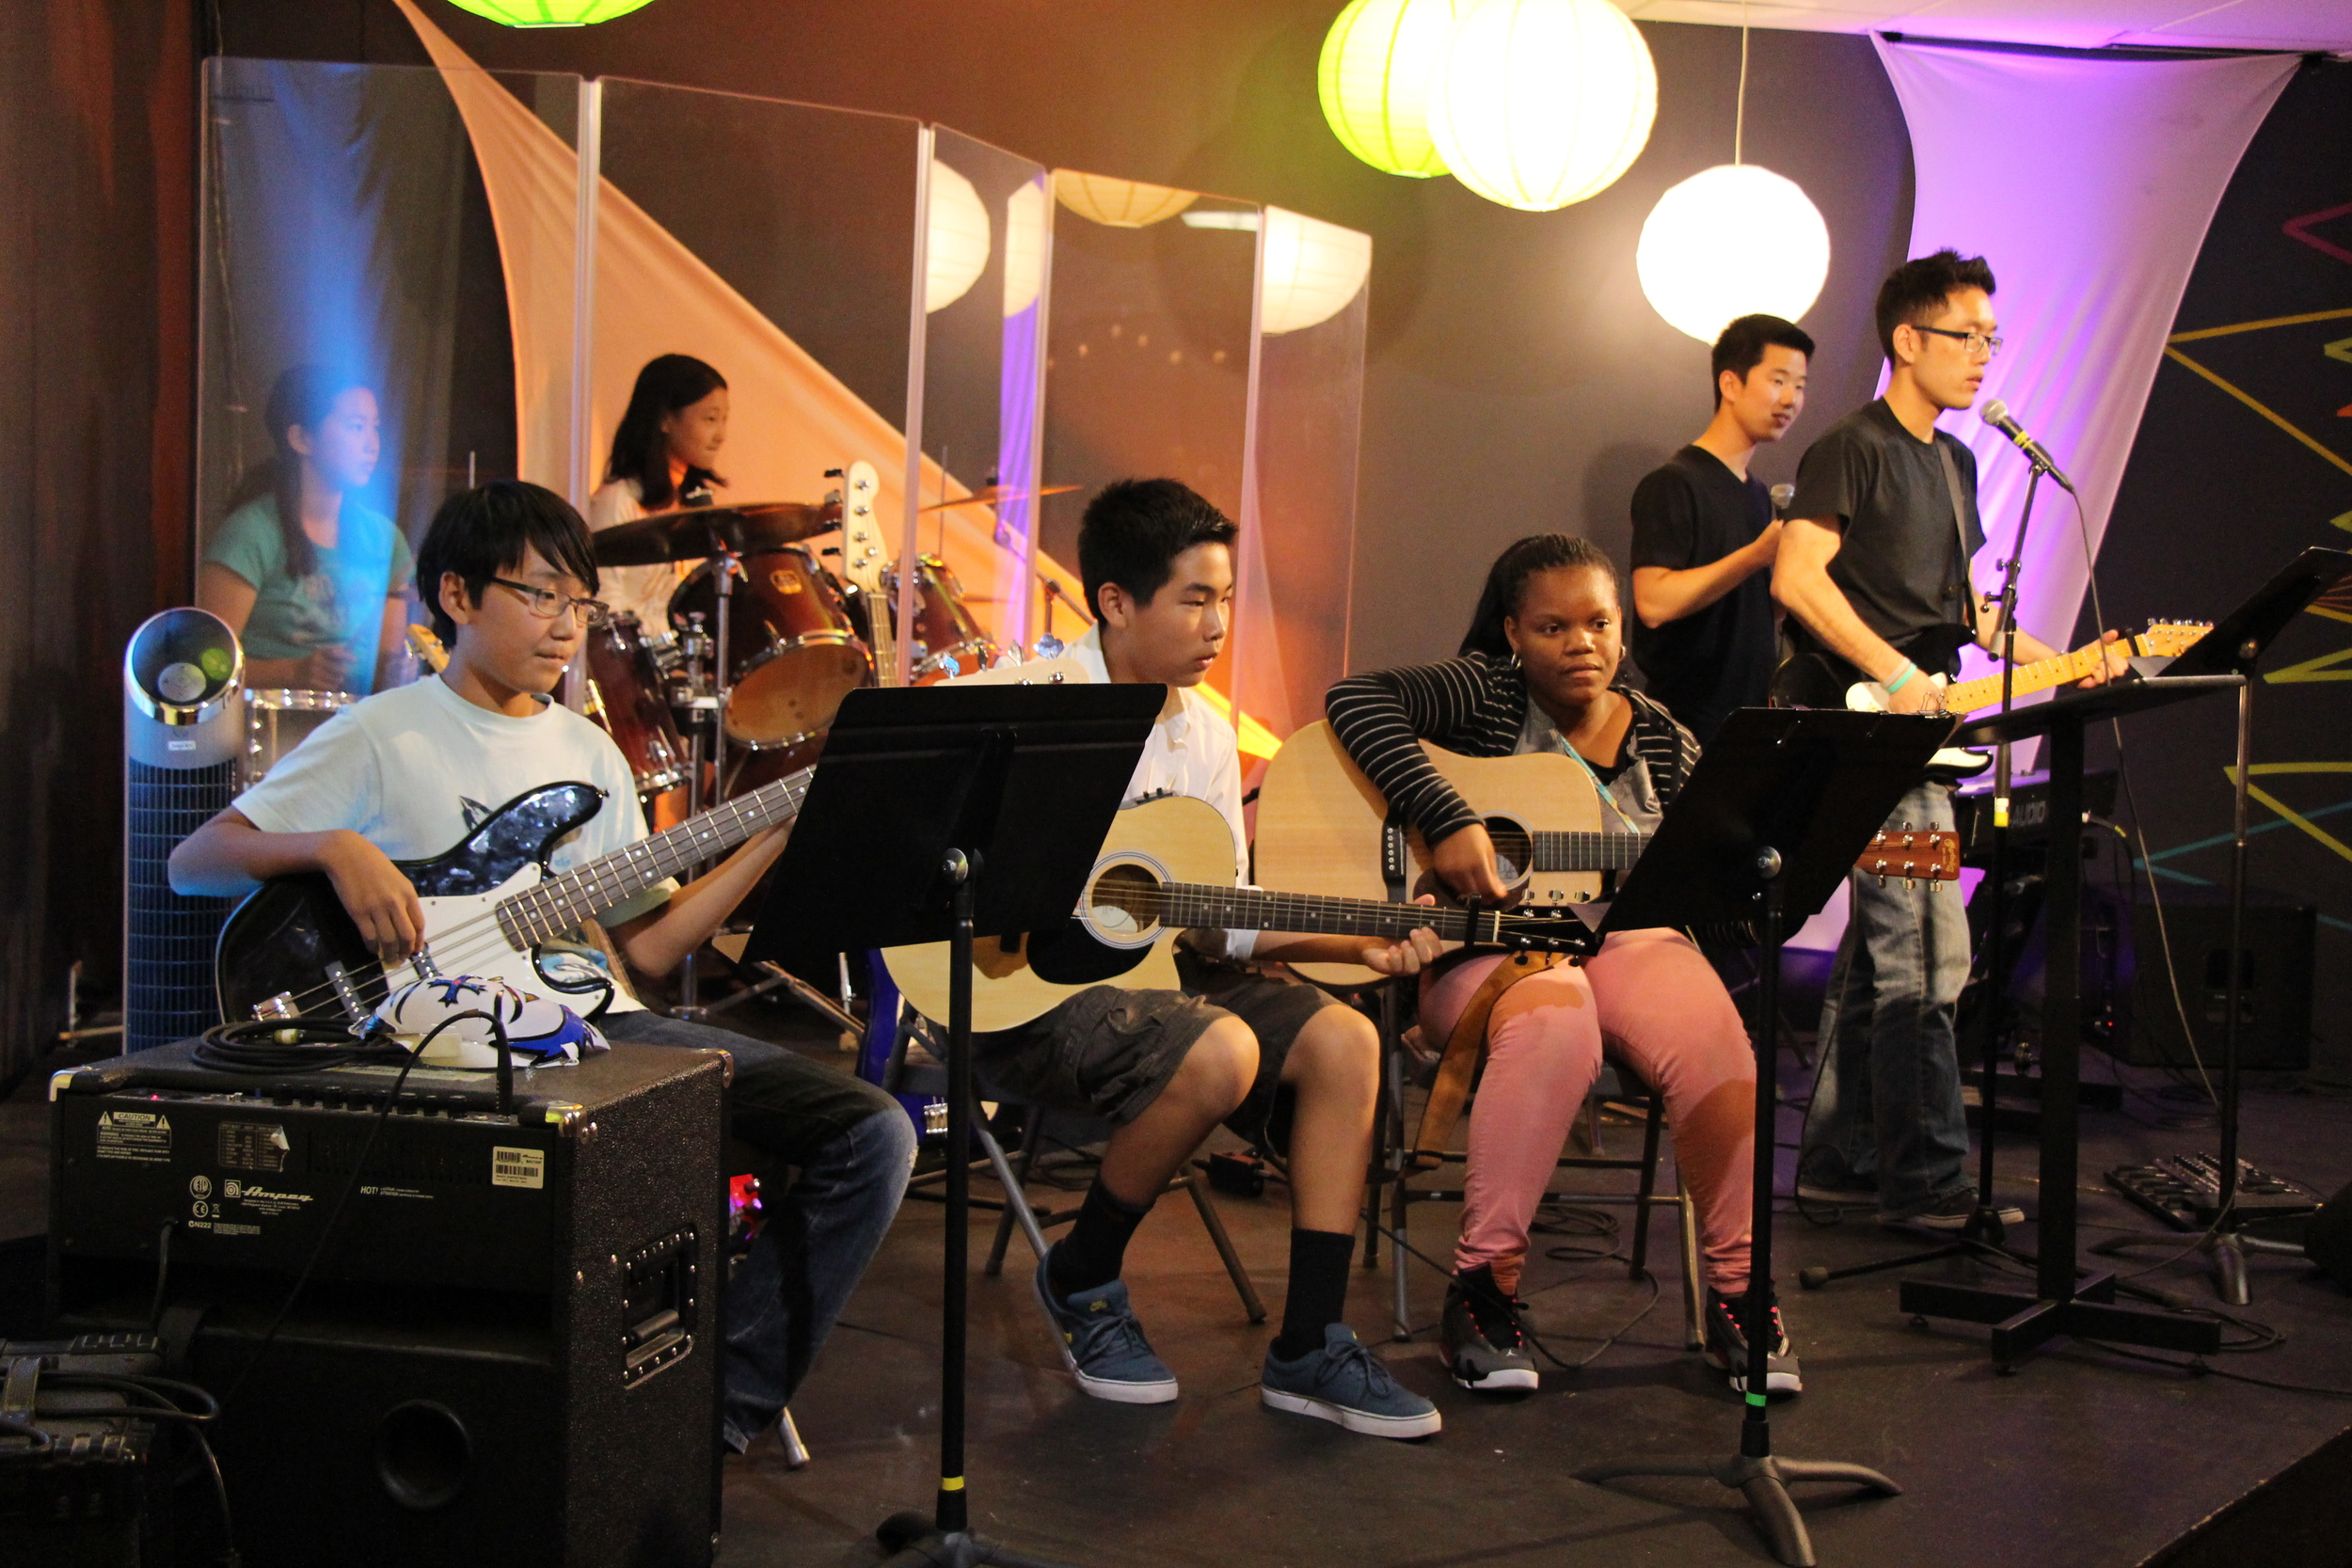 Afterwards, Hartie led our praise time while our very own Element students supplied the instrumentals!